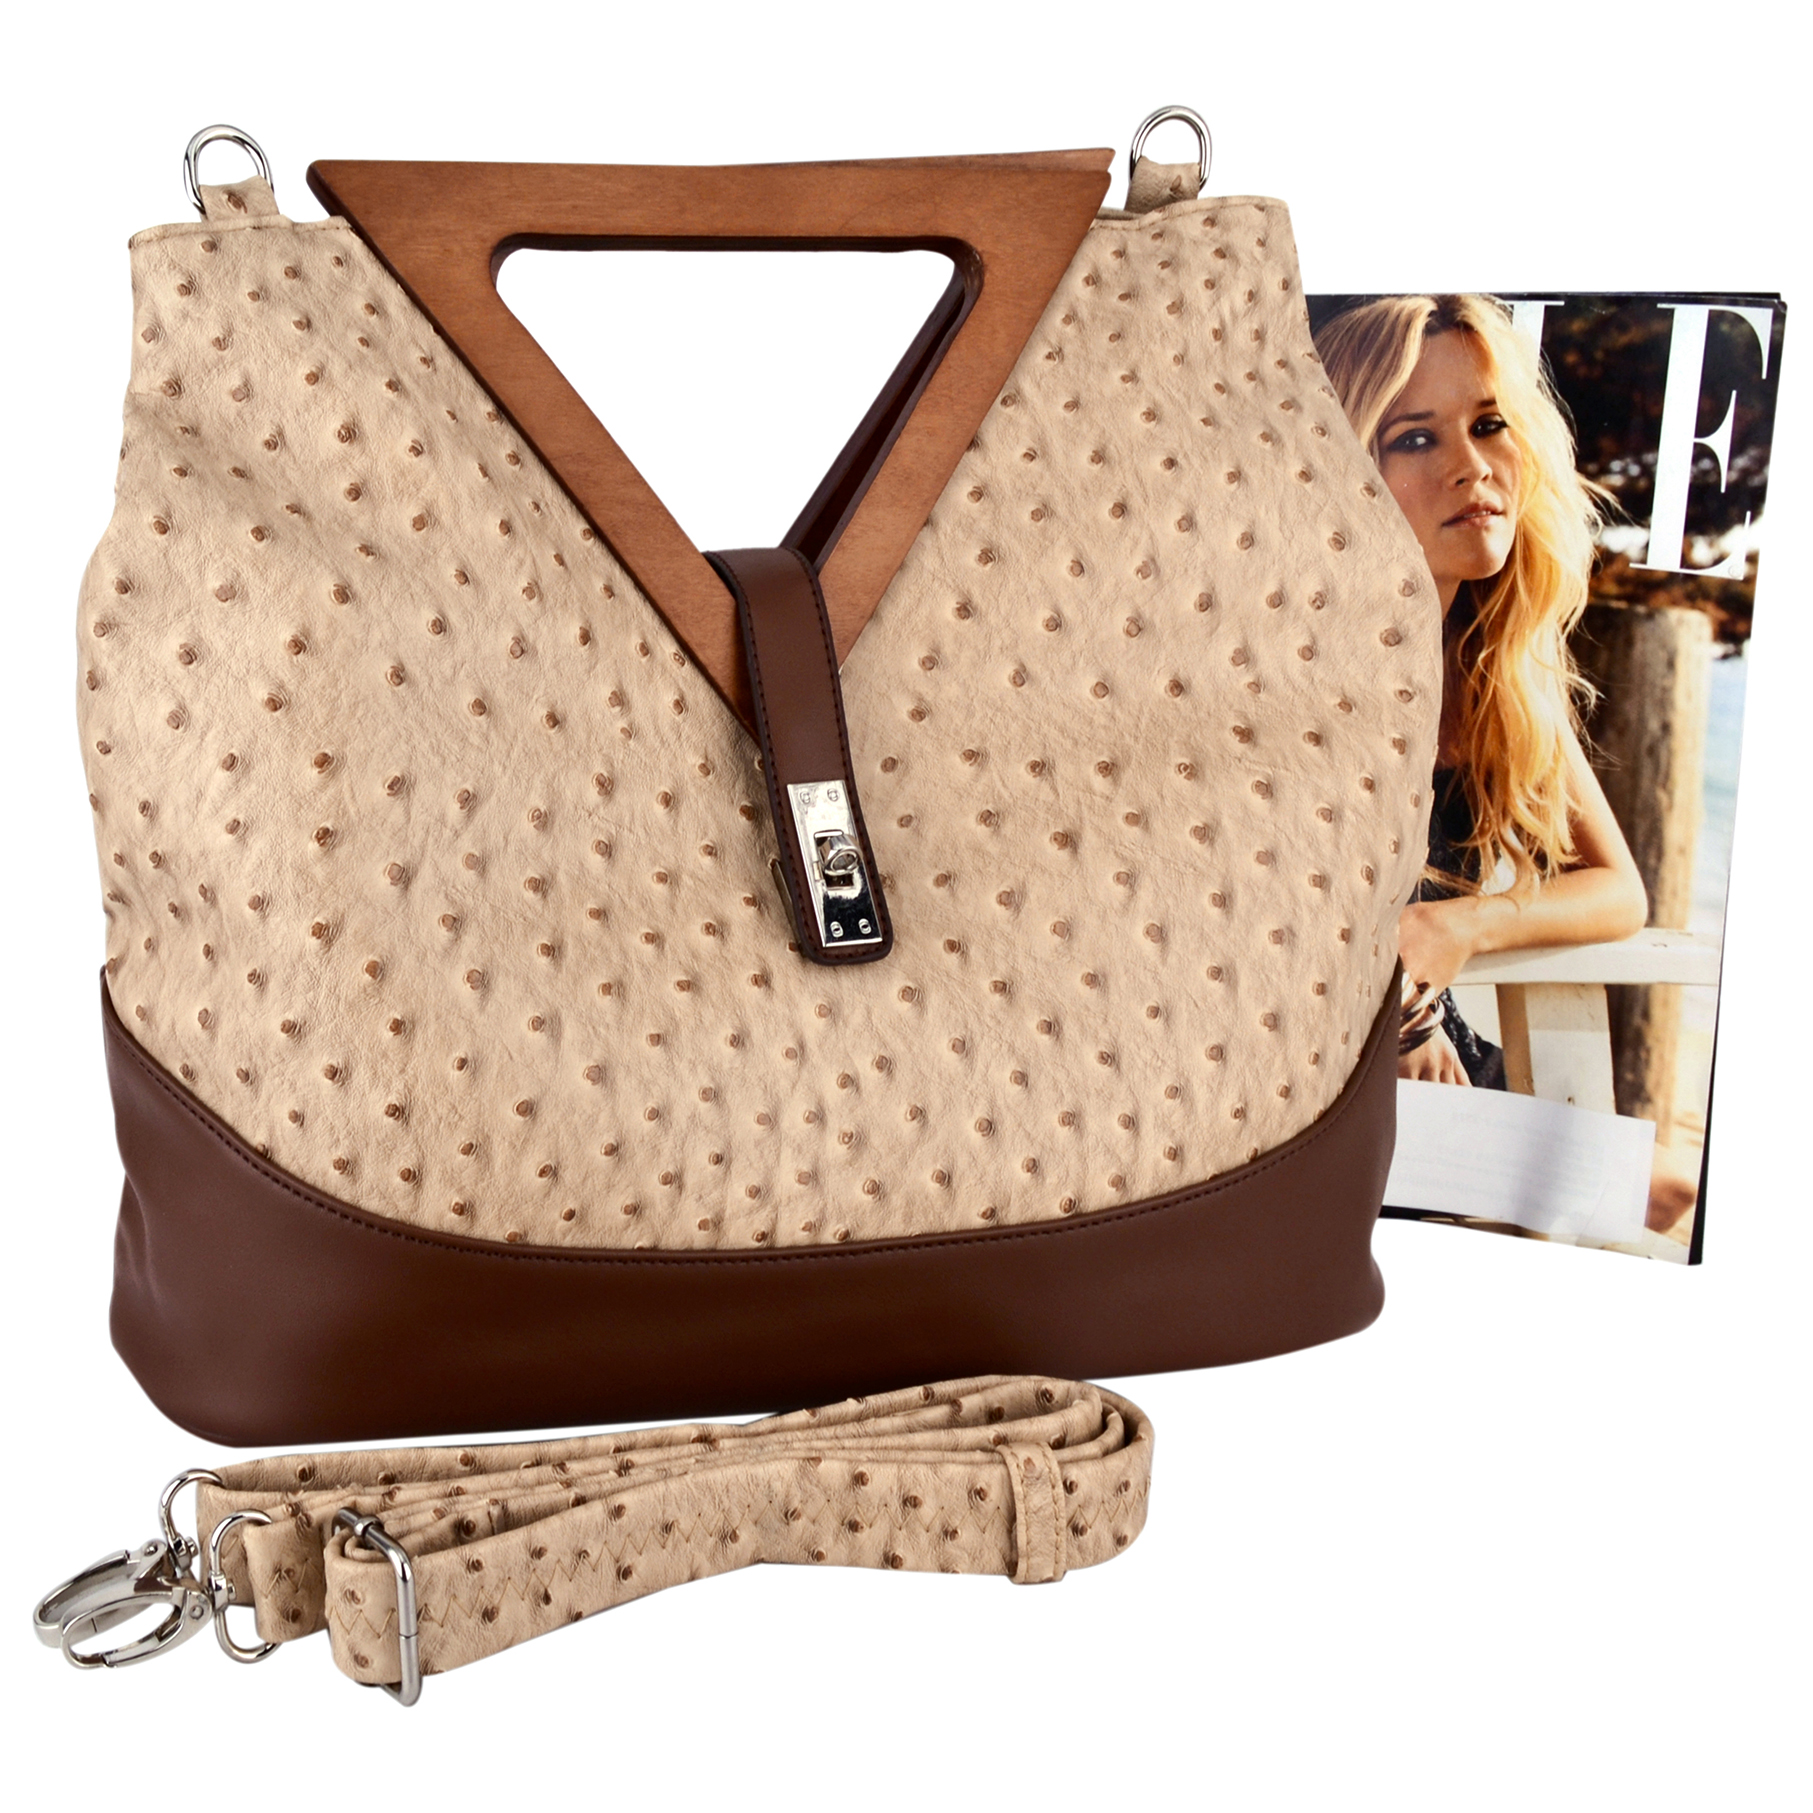 mg-collection-kora-wood-triangle-handbag-jsh-l20-1572tn-6.jpg